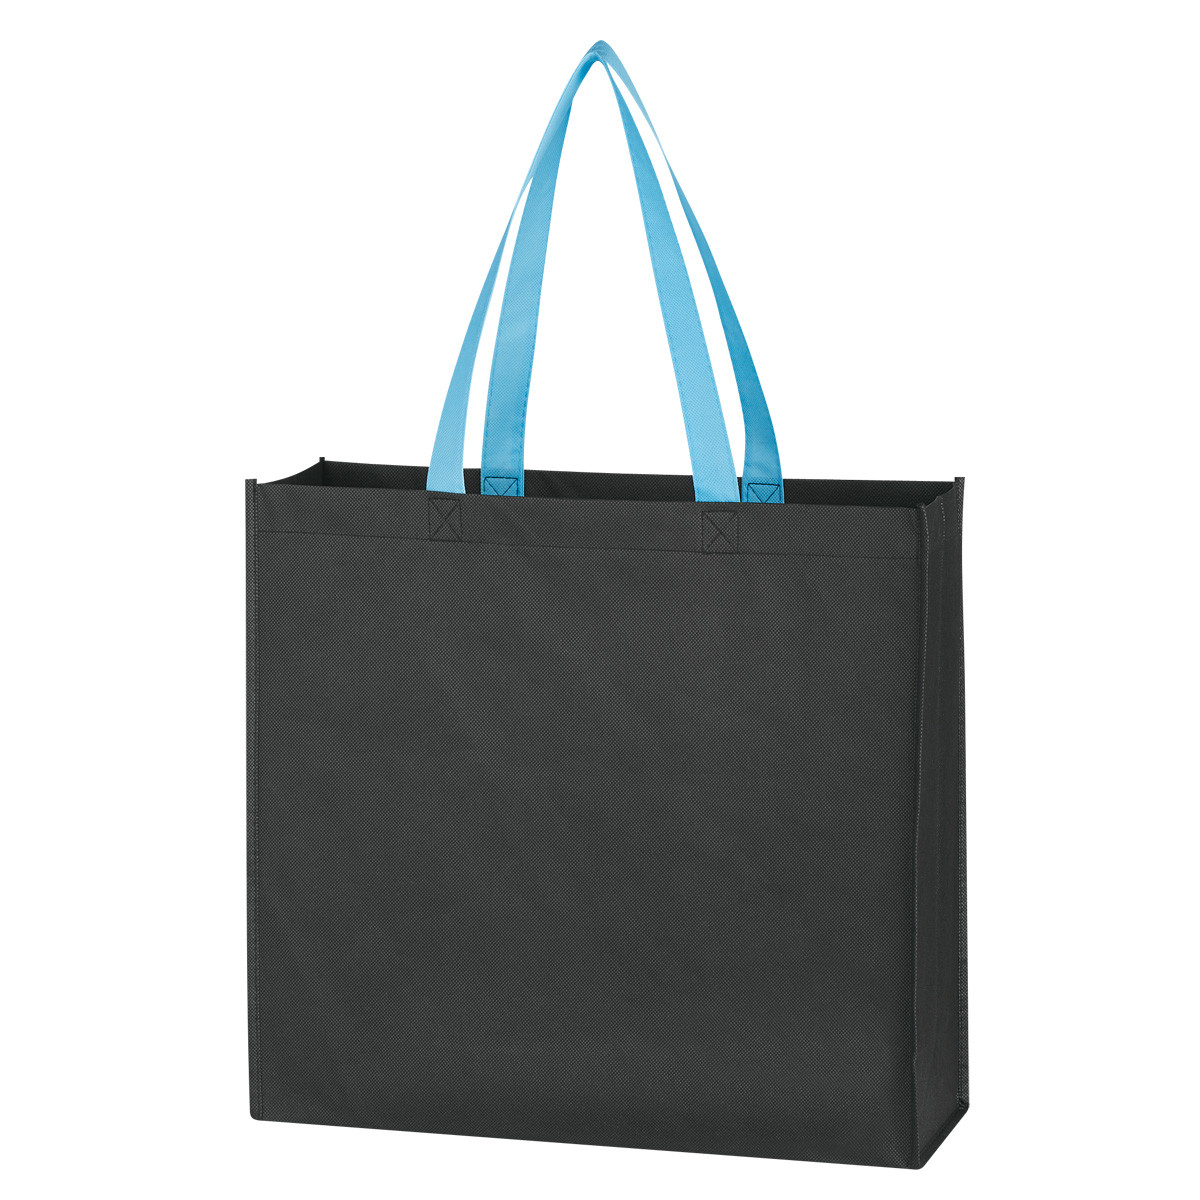 promotional various color grocery tote bag, reusable shopping bag, non woven shopping bag